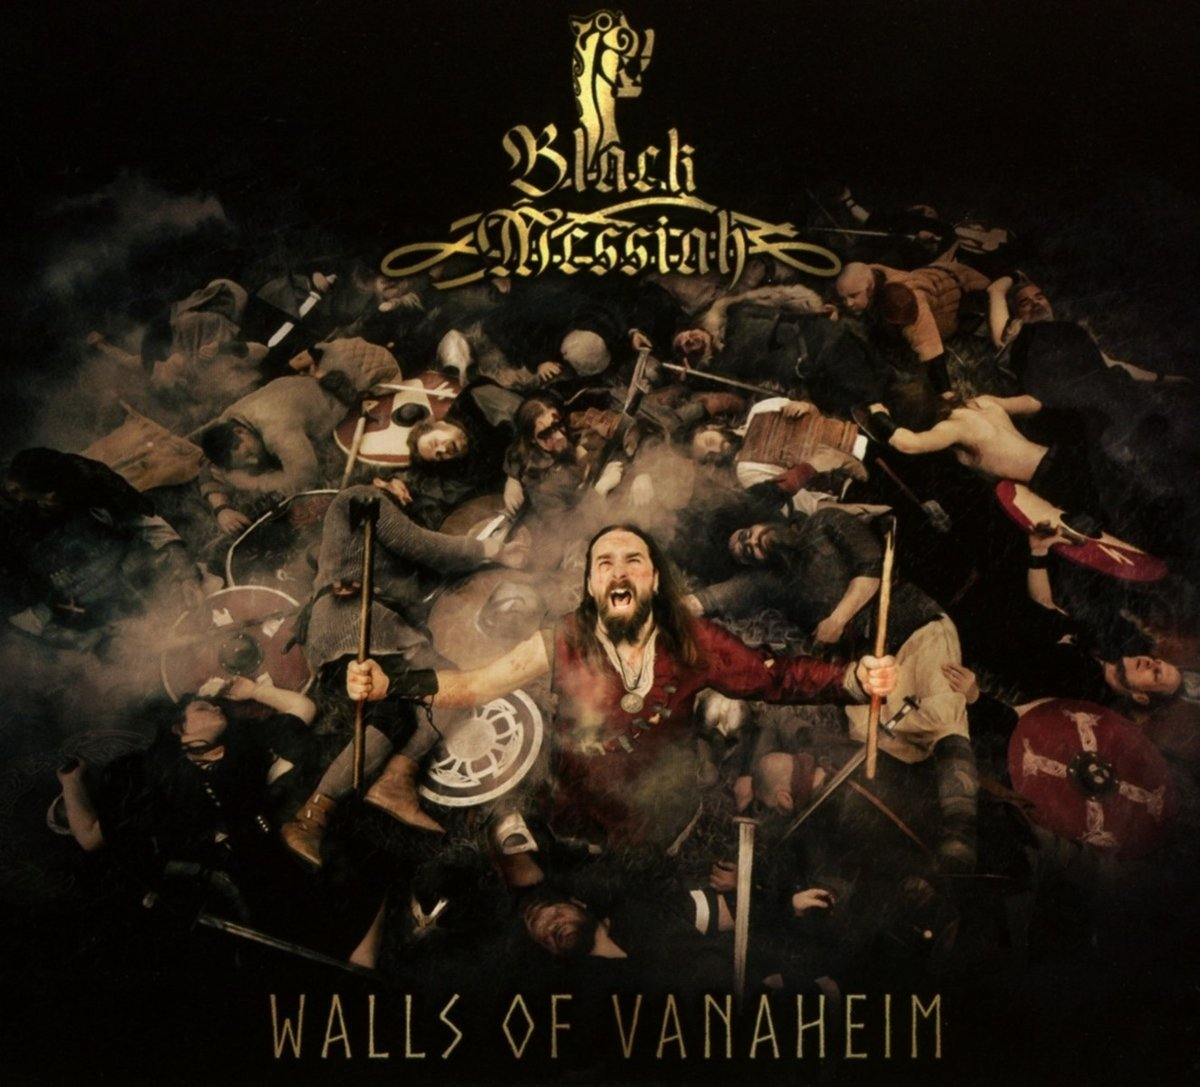 Black Messiah :Walls of Vanaheim (2017) Book Cover